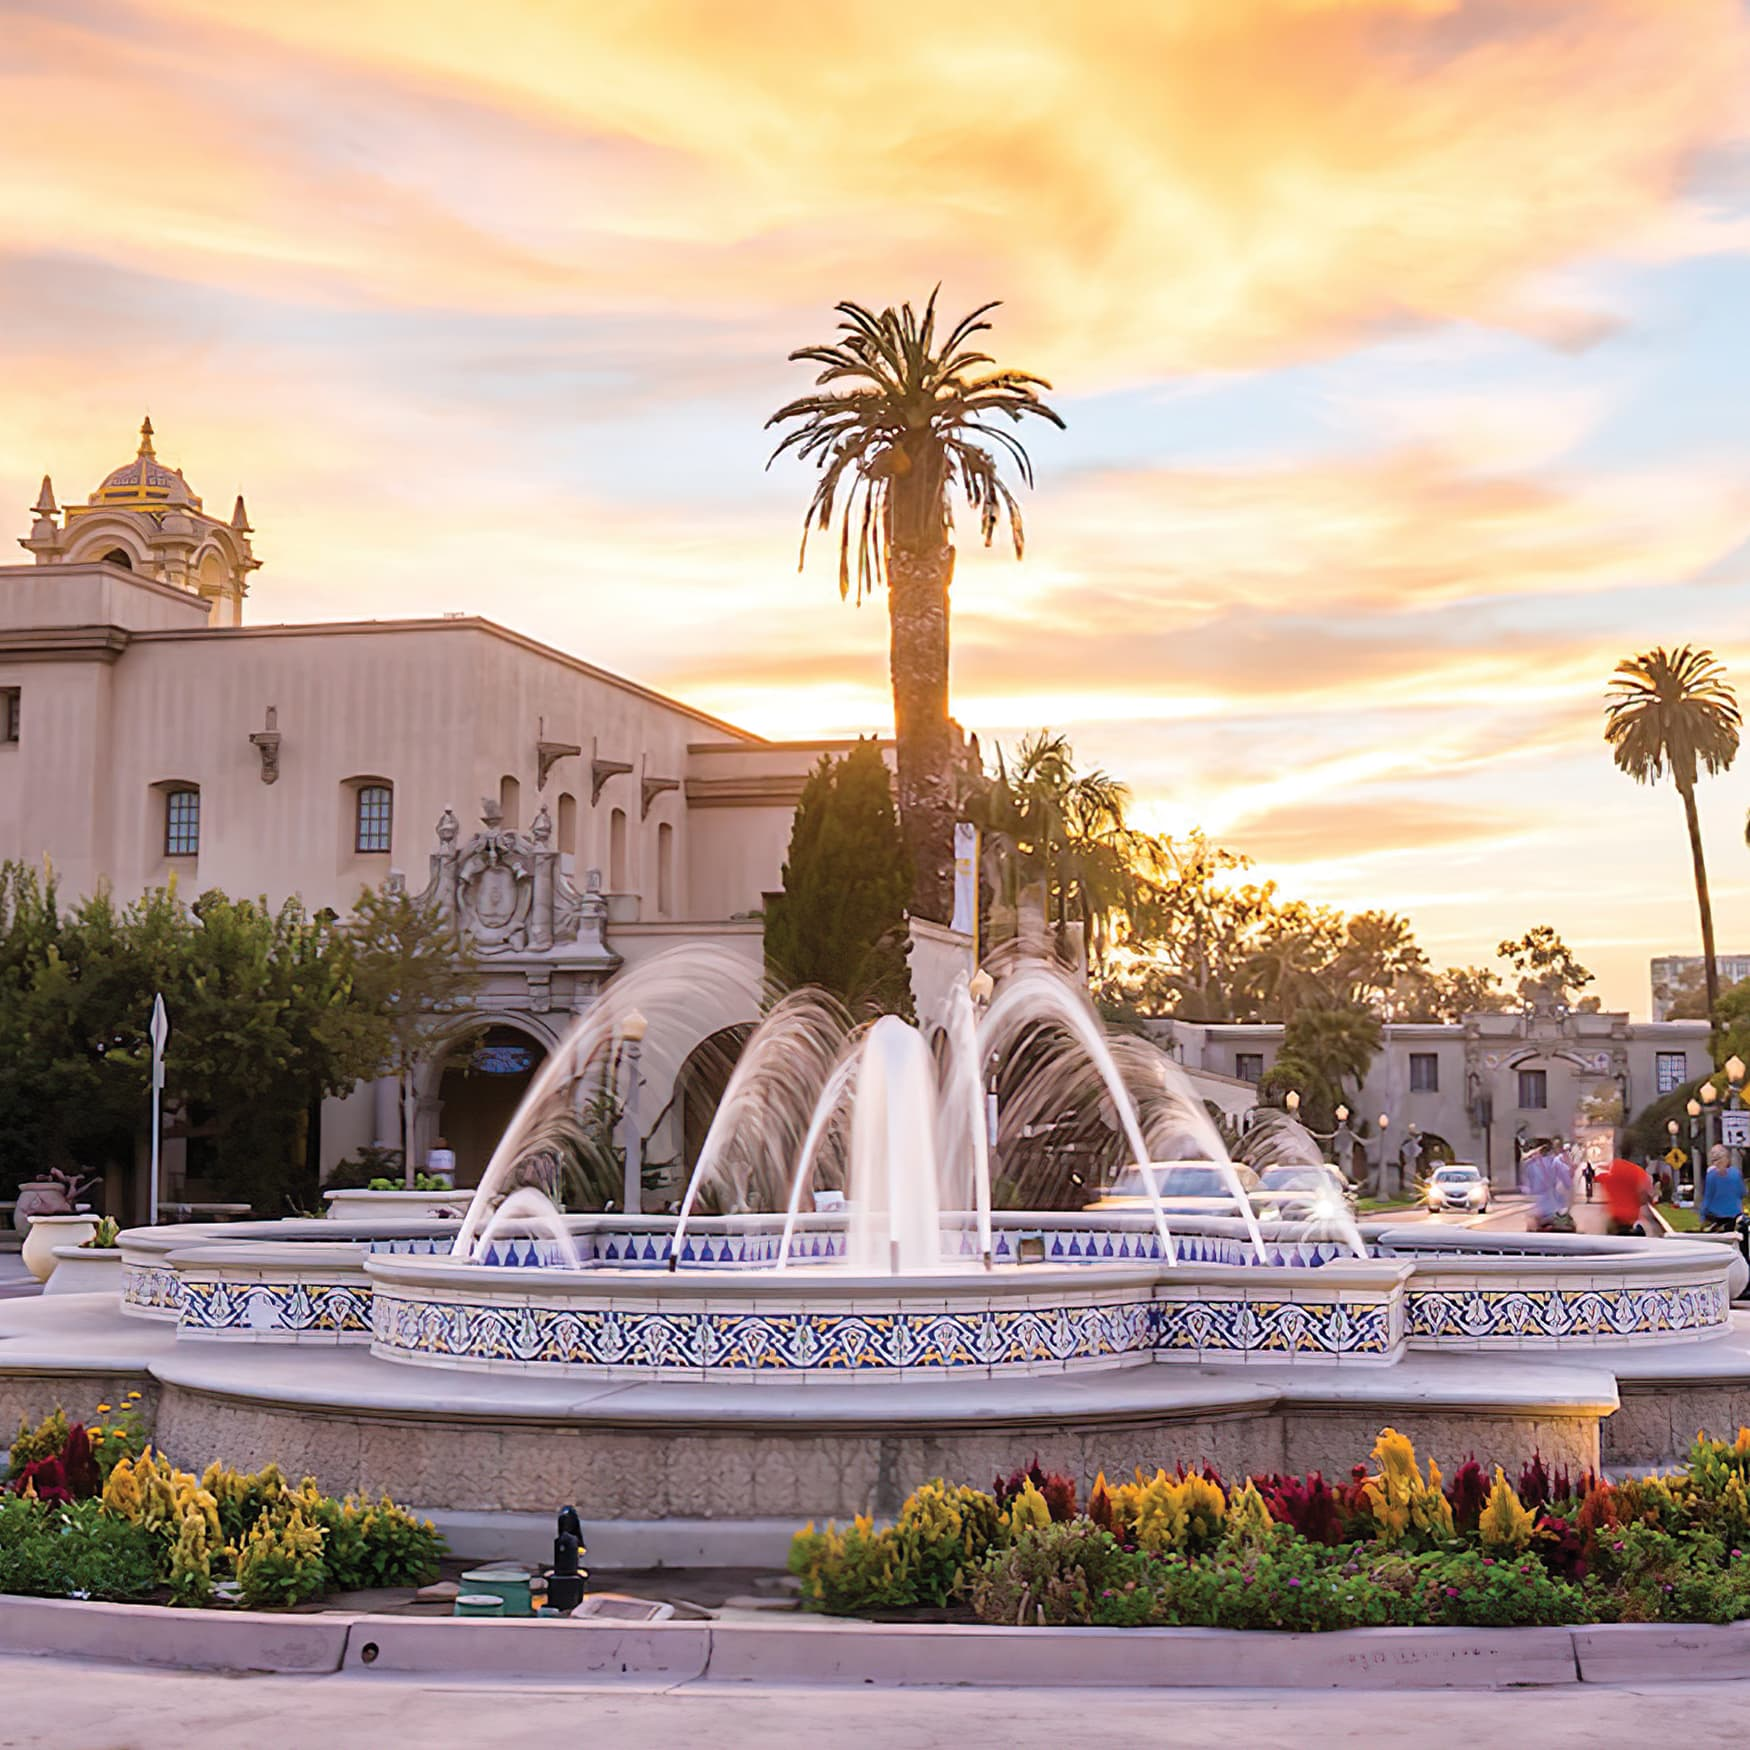 A photograph of a beautiful fountain located in Balboa Park.